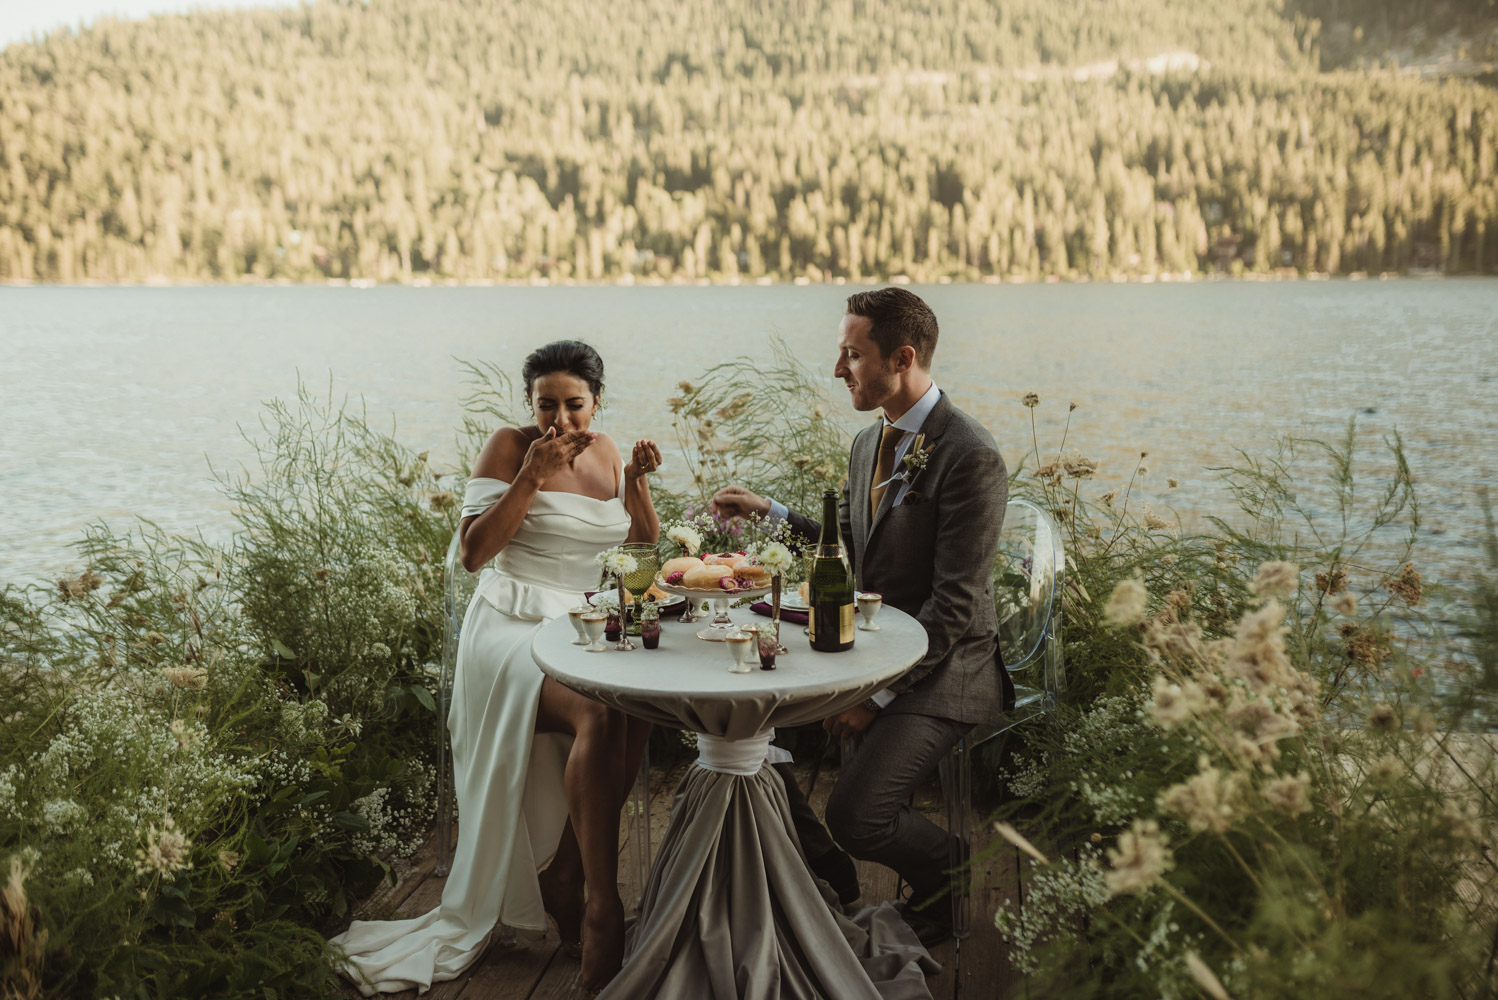 Lake Tahoe pop-up wedding/elopement couple feeding each other photo